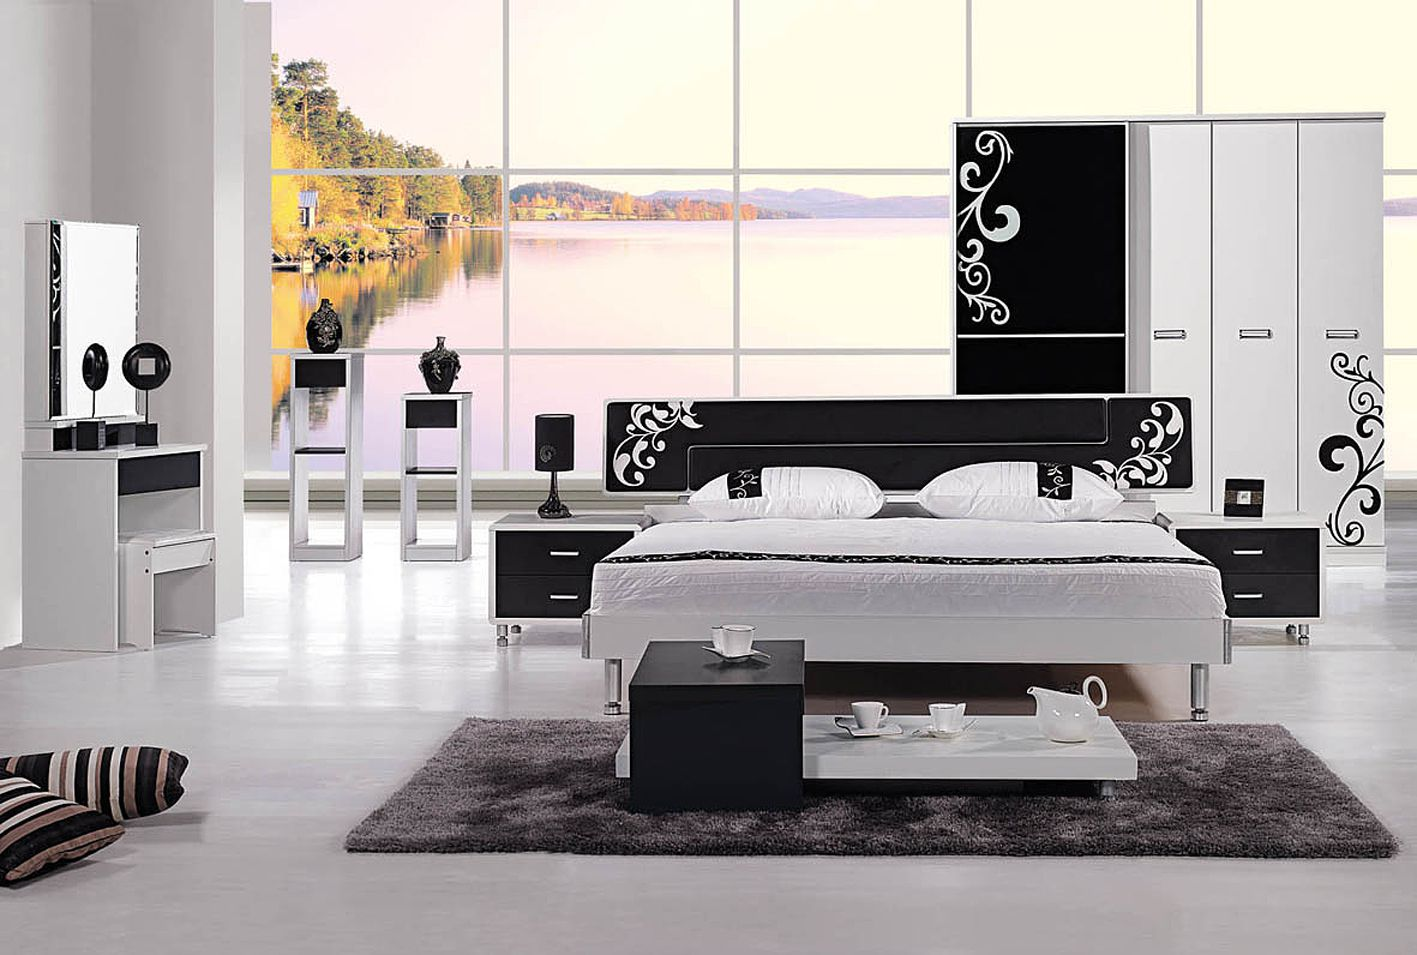 Model Bedroom 2014 new model bedroom furniture was made from e1 mdf board and